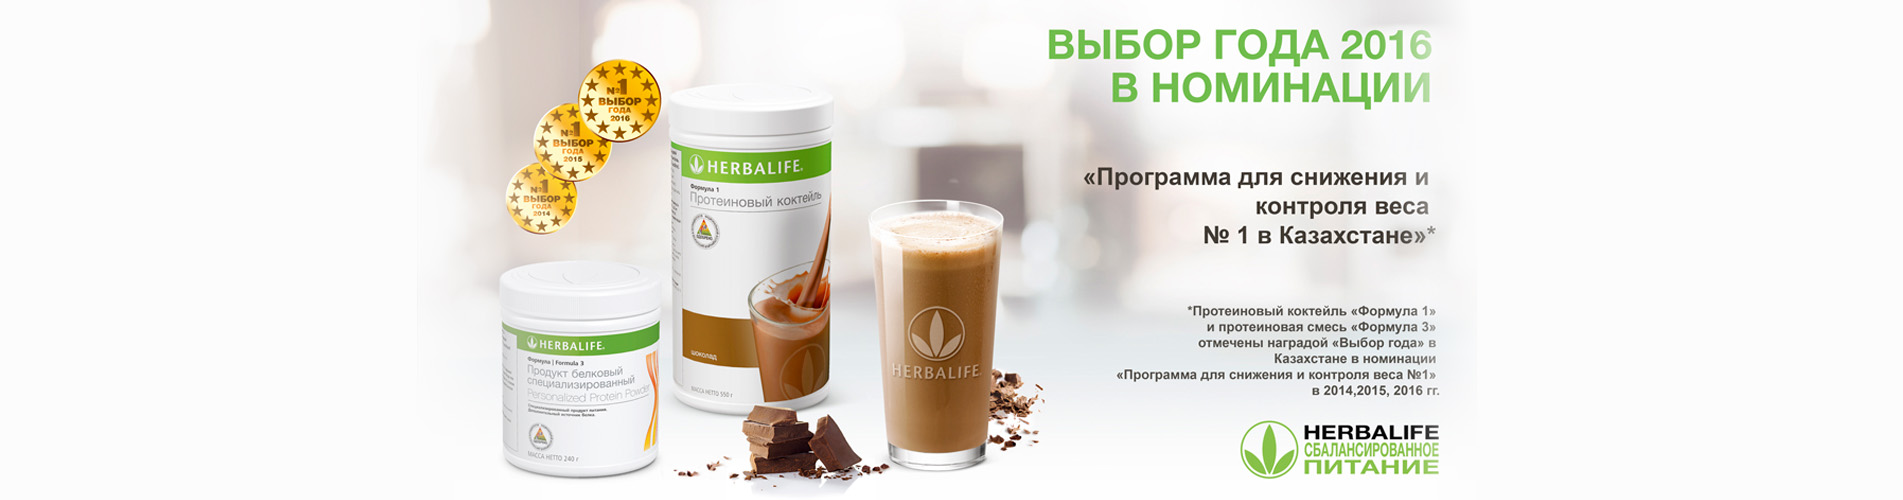 herbalife-choose-2016-promo